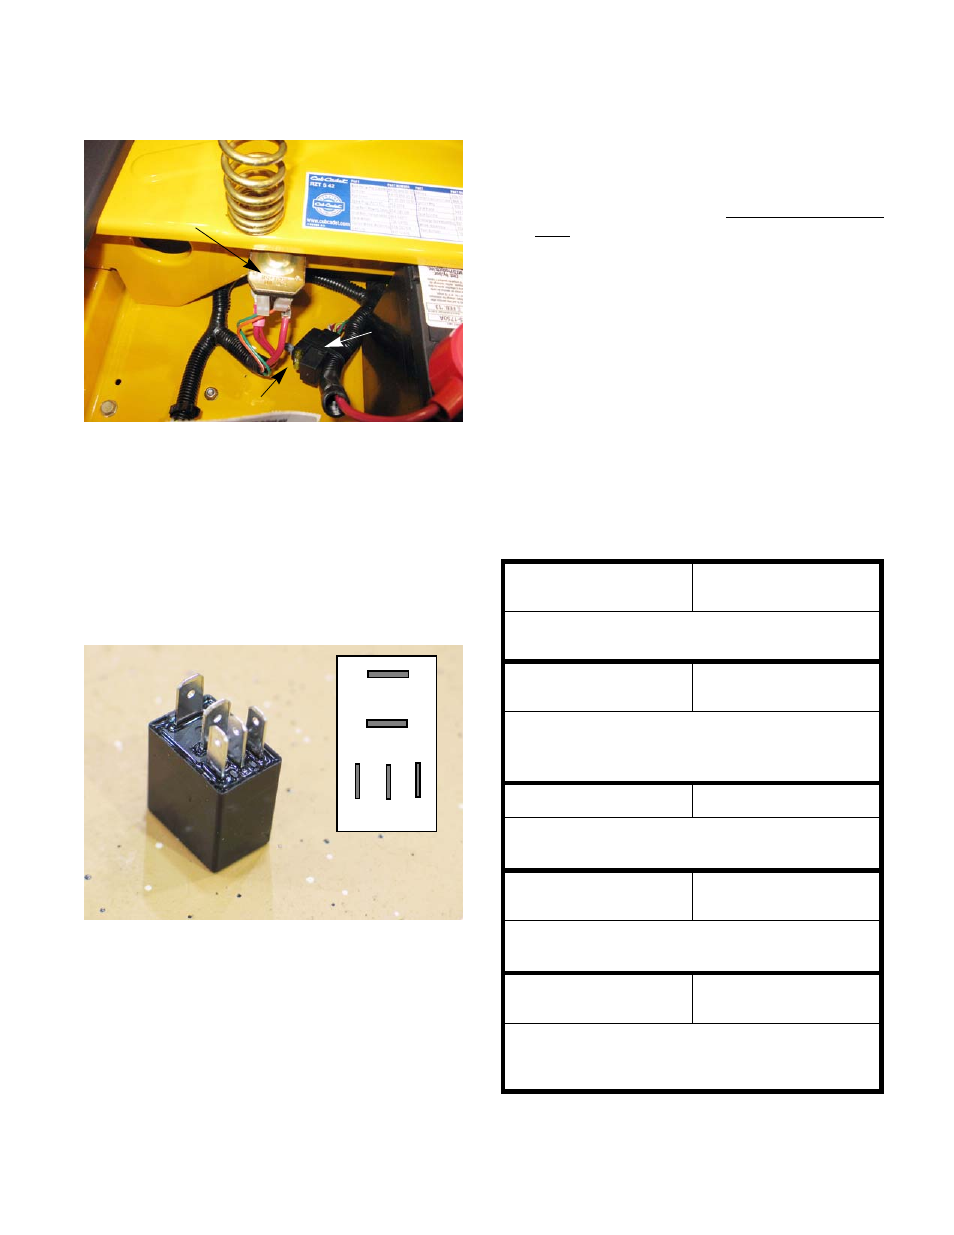 Starter Solenoid Pto Relay Cub Cadet Rzt S Series User Manual Common Terminal In Page 71 136